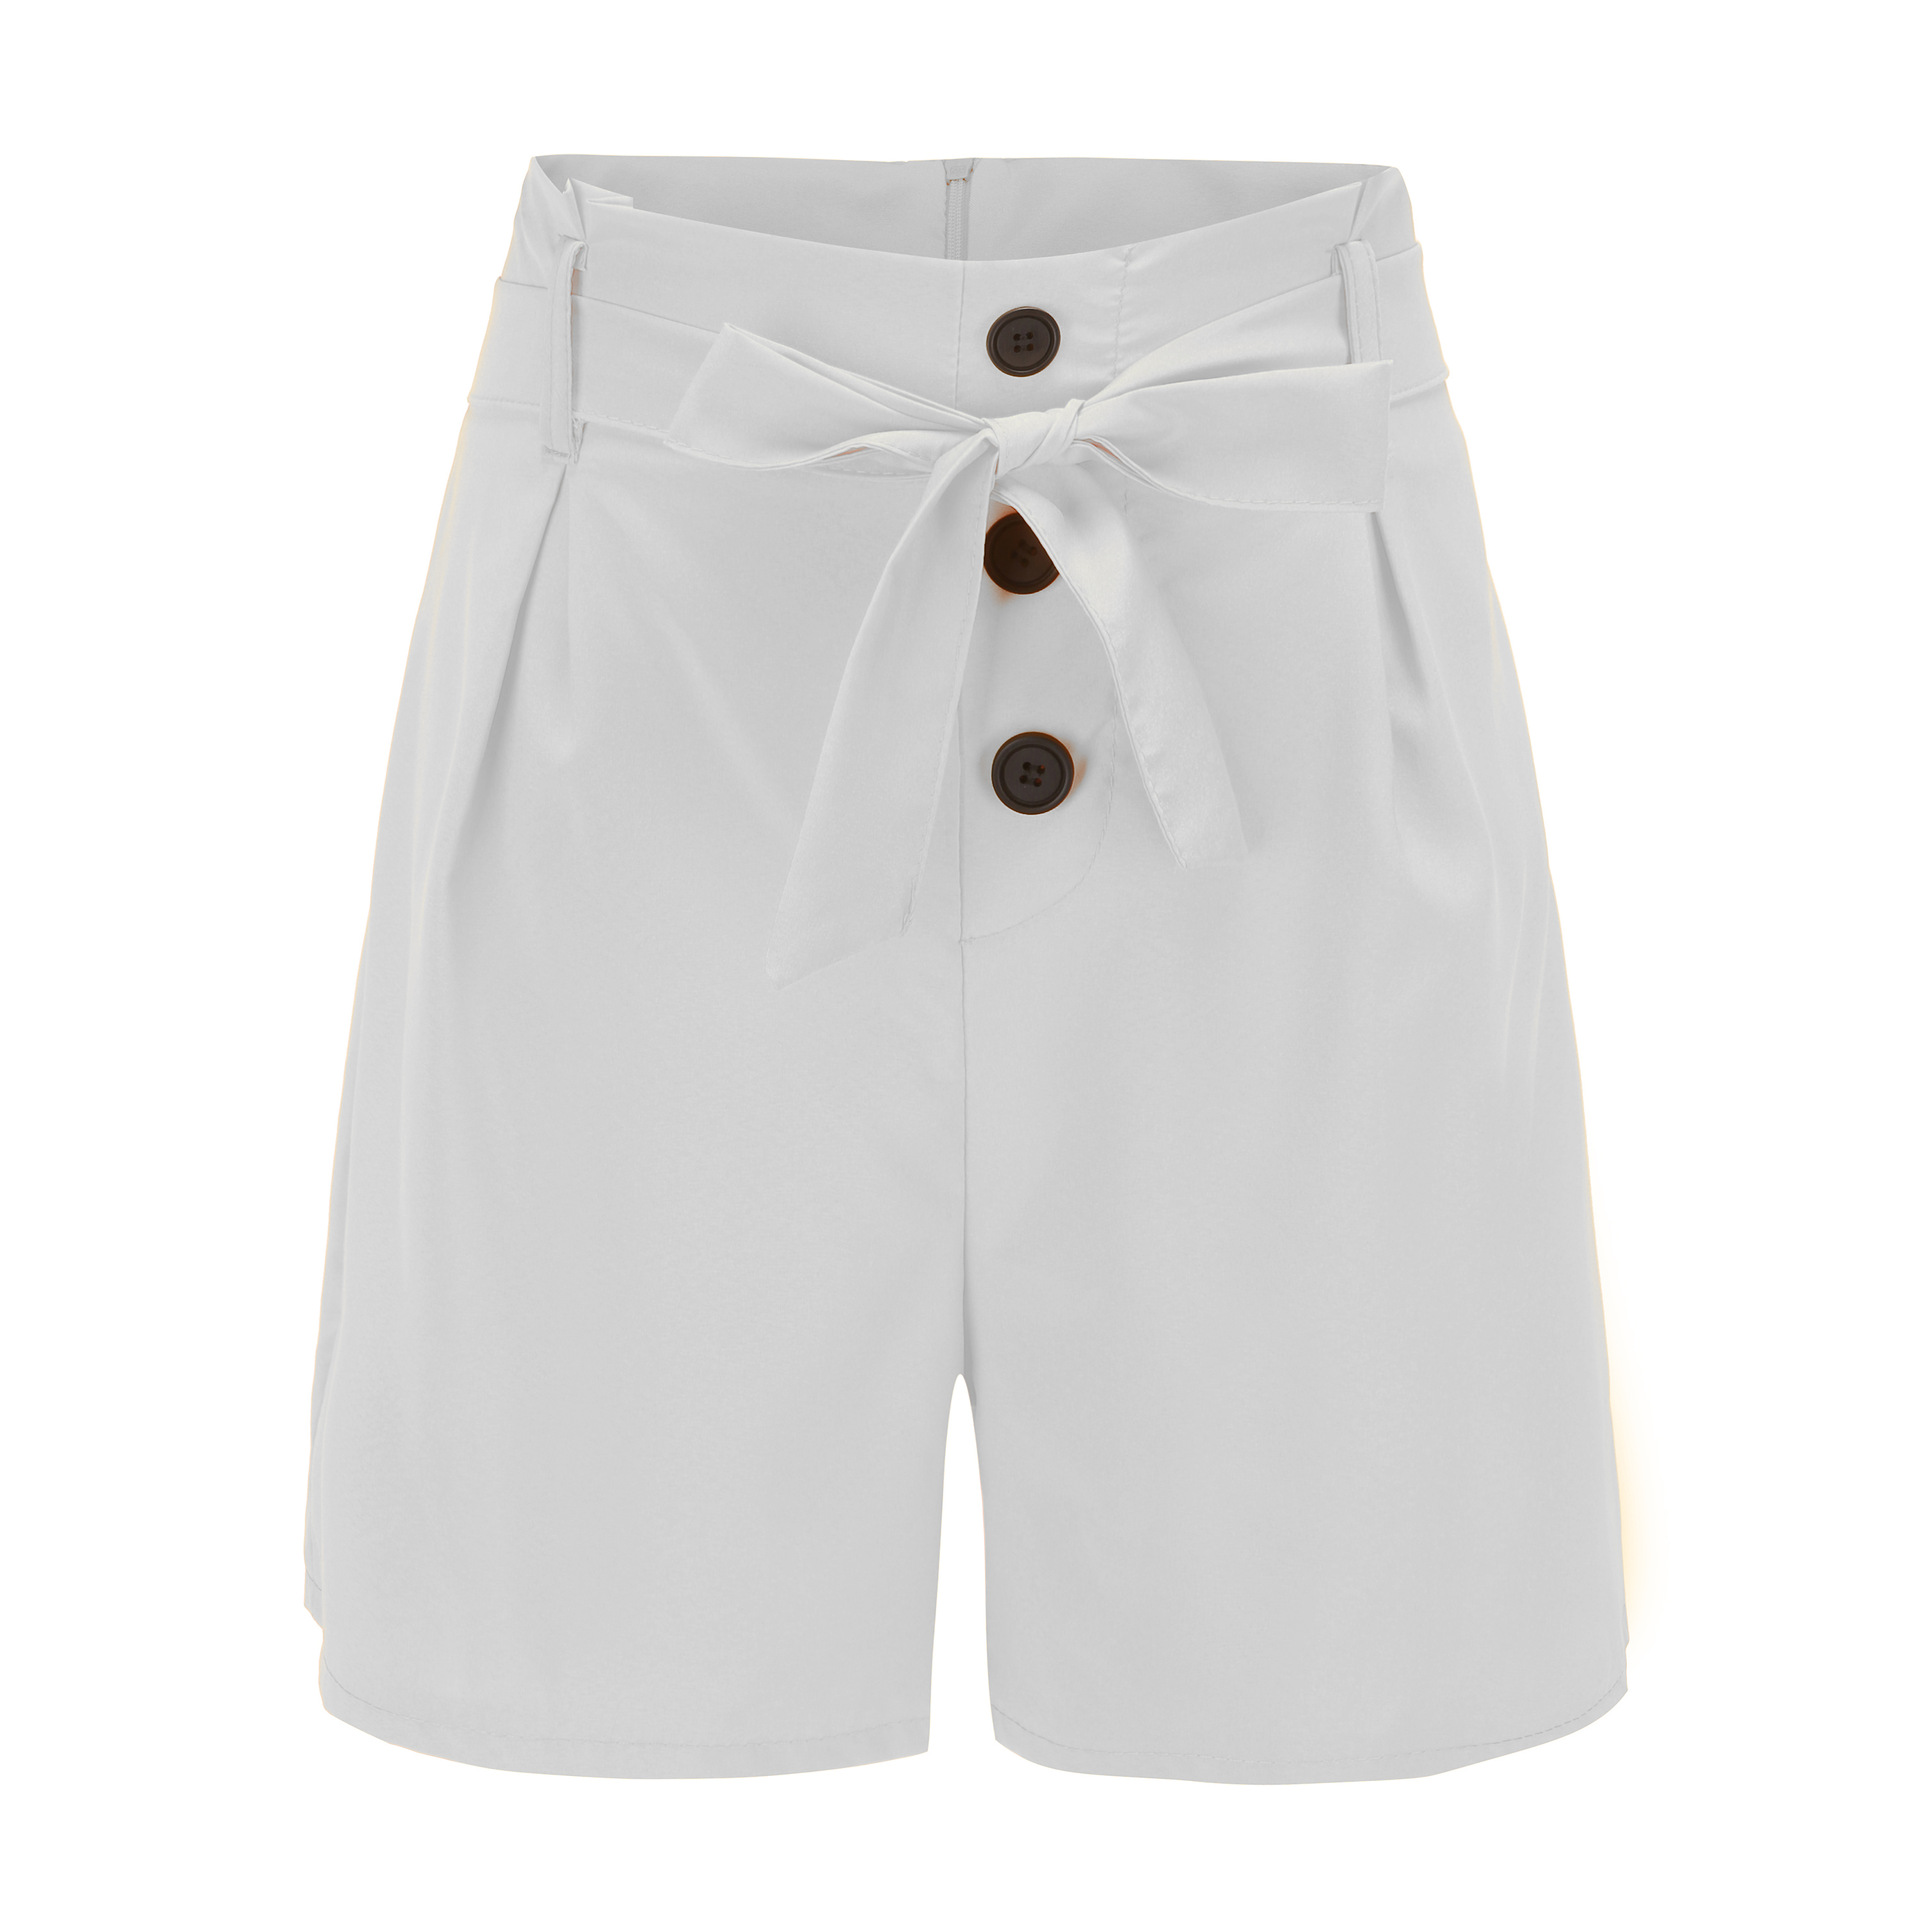 ONCE Women Shorts High Waist Buttons Sashes Elegant  Summer Zip-Up Skinny Shorts Solid Plus Size Pockets Summer Casual Shorts 10